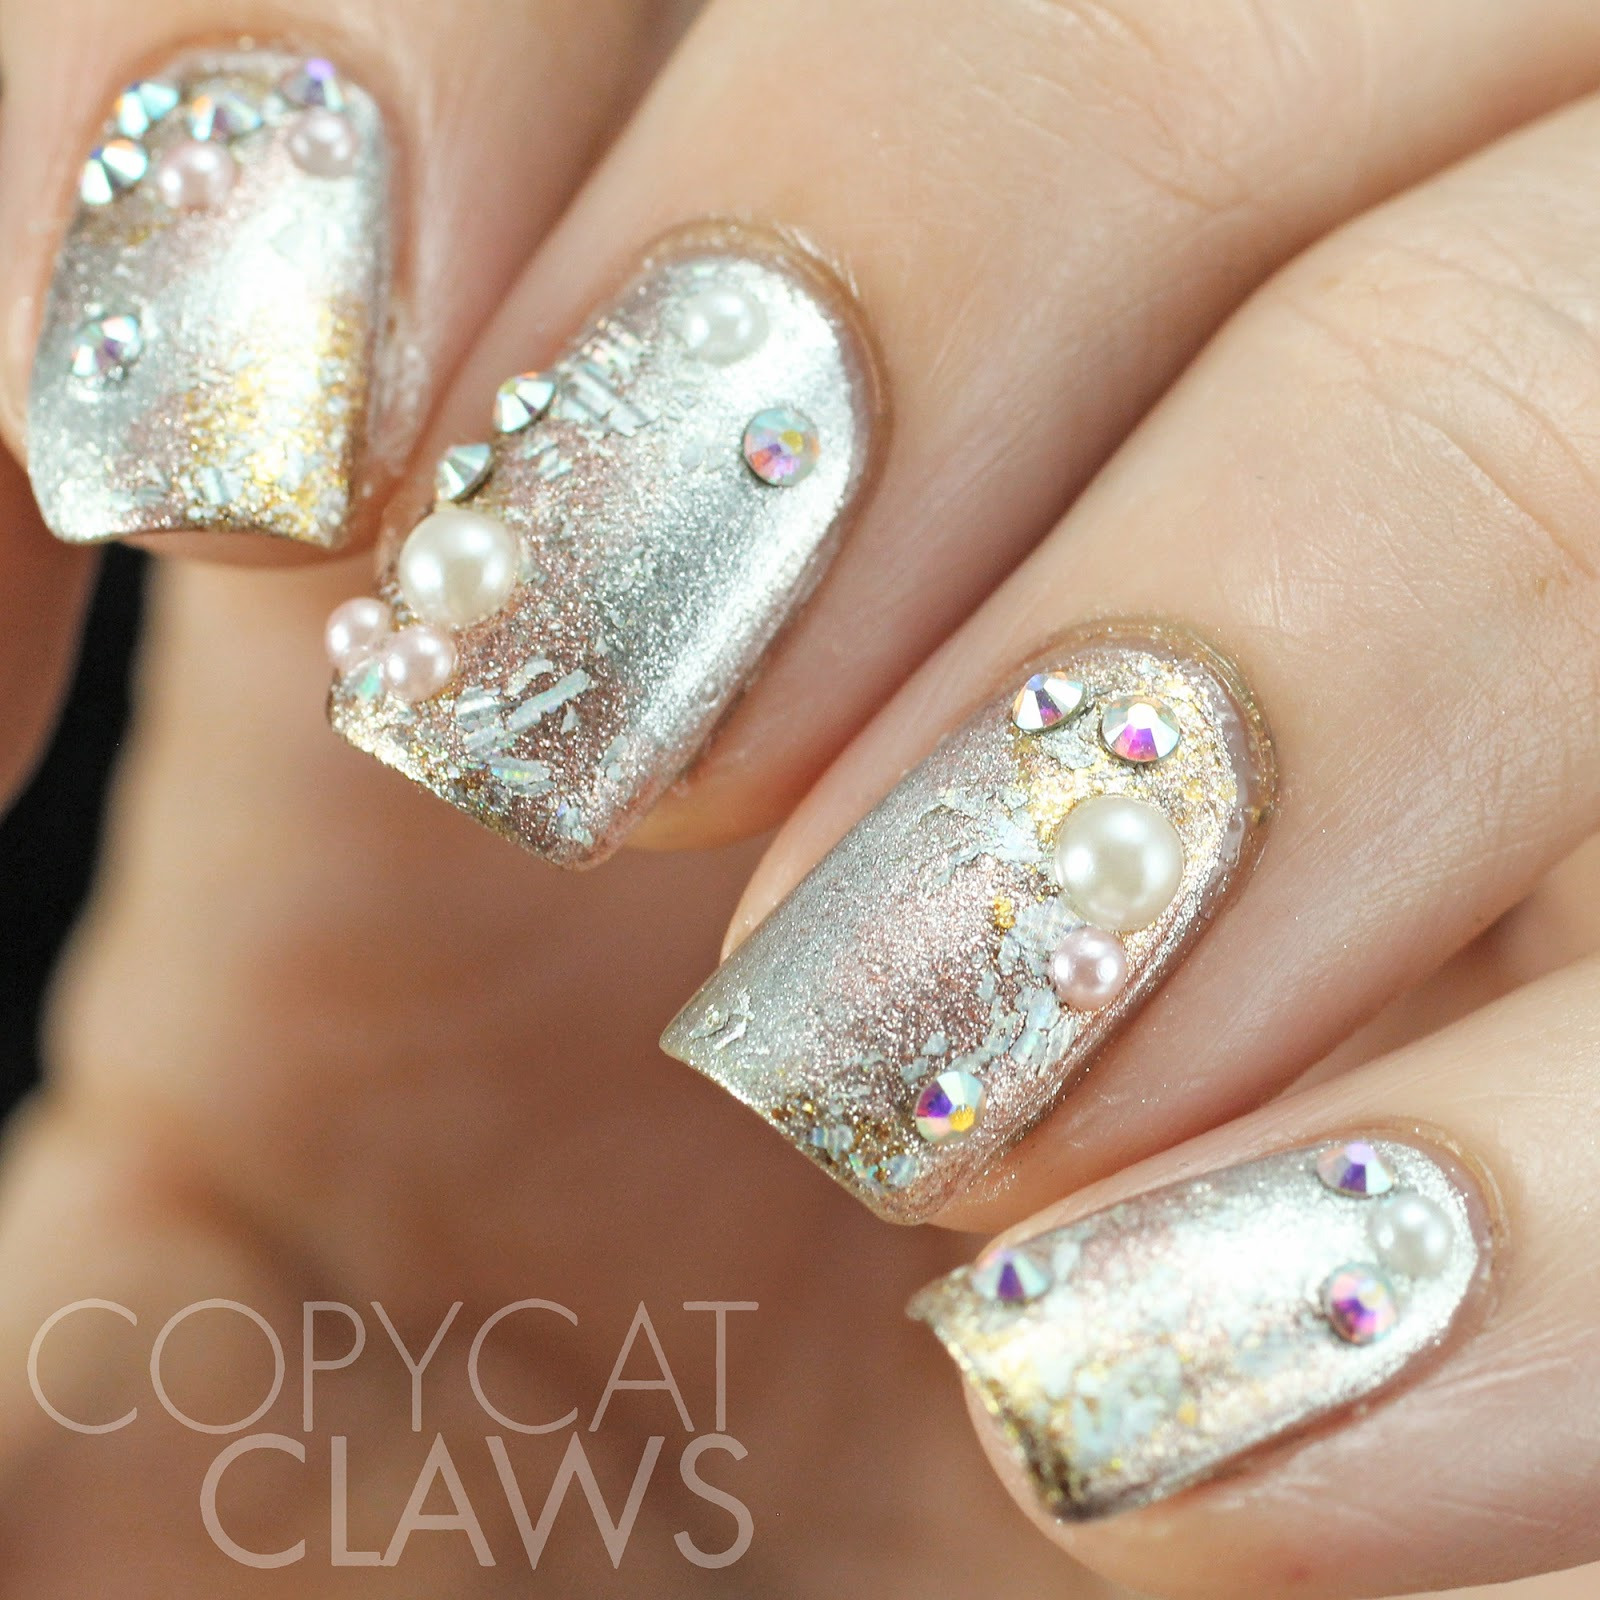 Copycat Claws: The Digit-al Dozen does Inspired by Pinterest ...